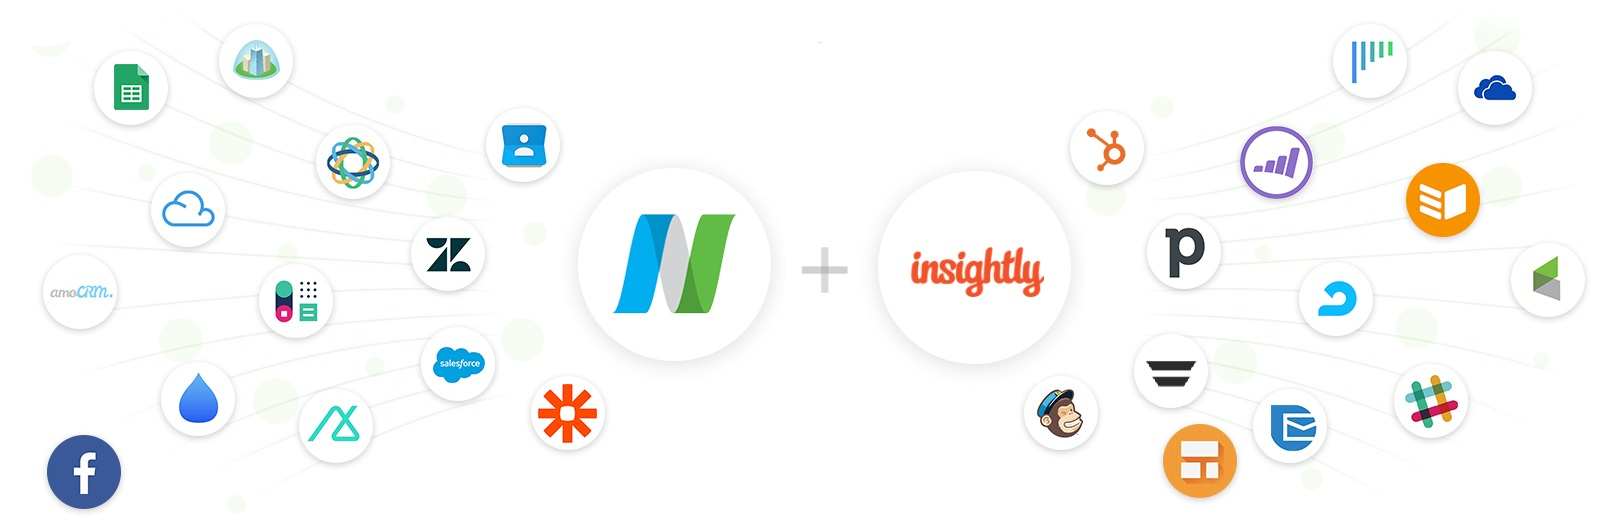 VoIP NUACOM and Insightly Integration